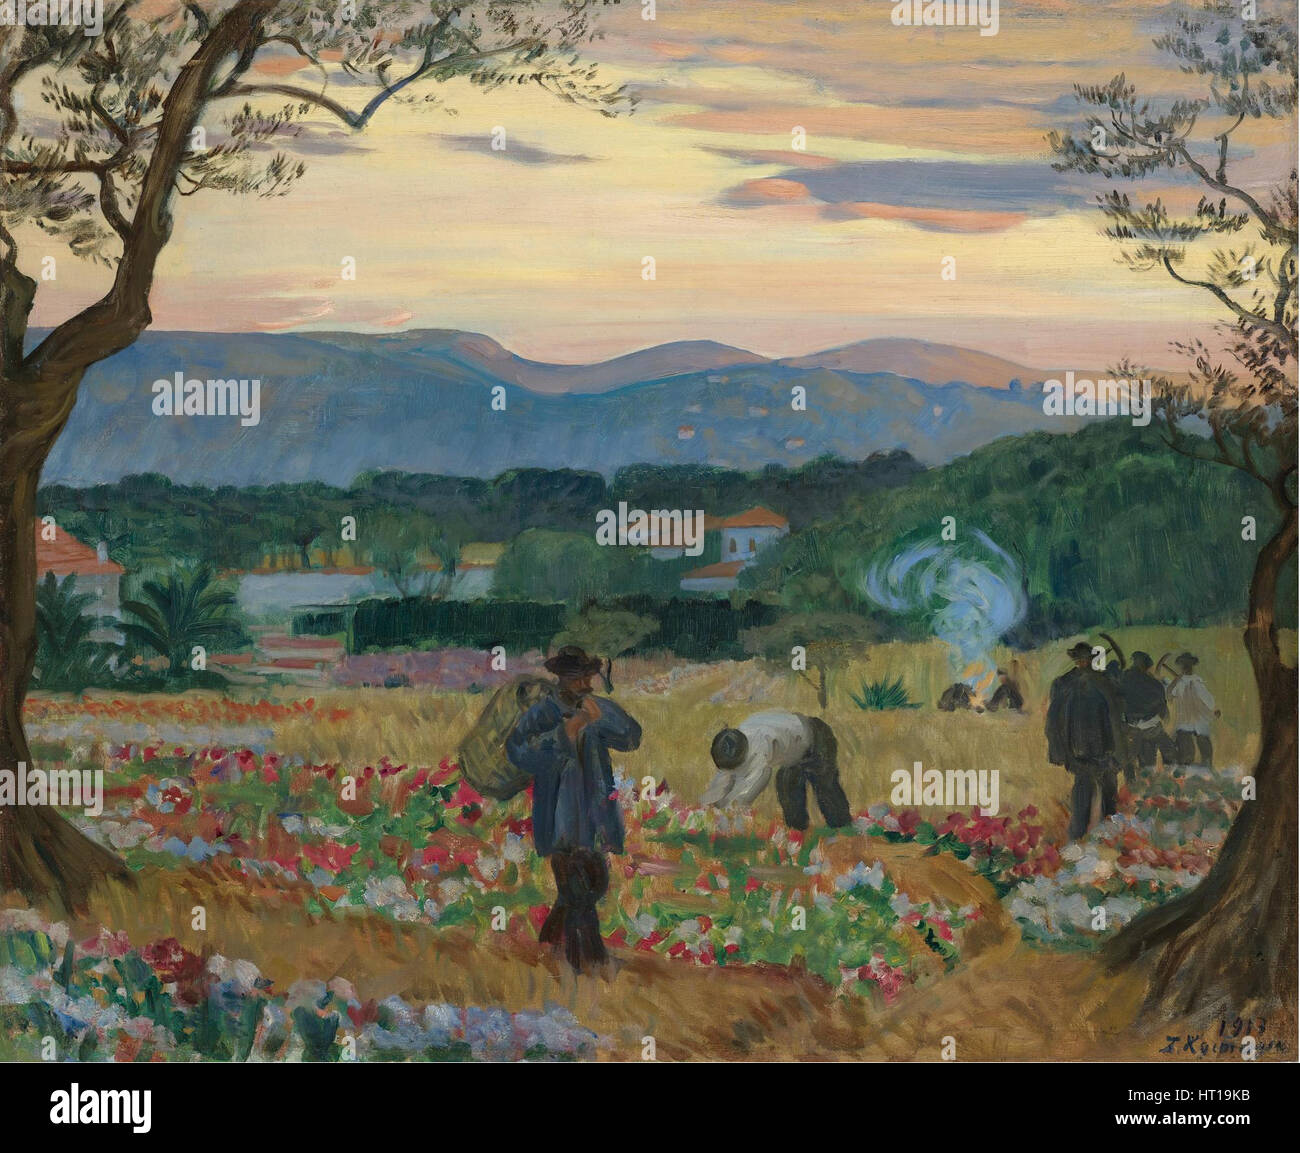 The Harvest Flowers, 1913. Artist: Kustodiev, Boris Michaylovich (1878-1927) - Stock Image